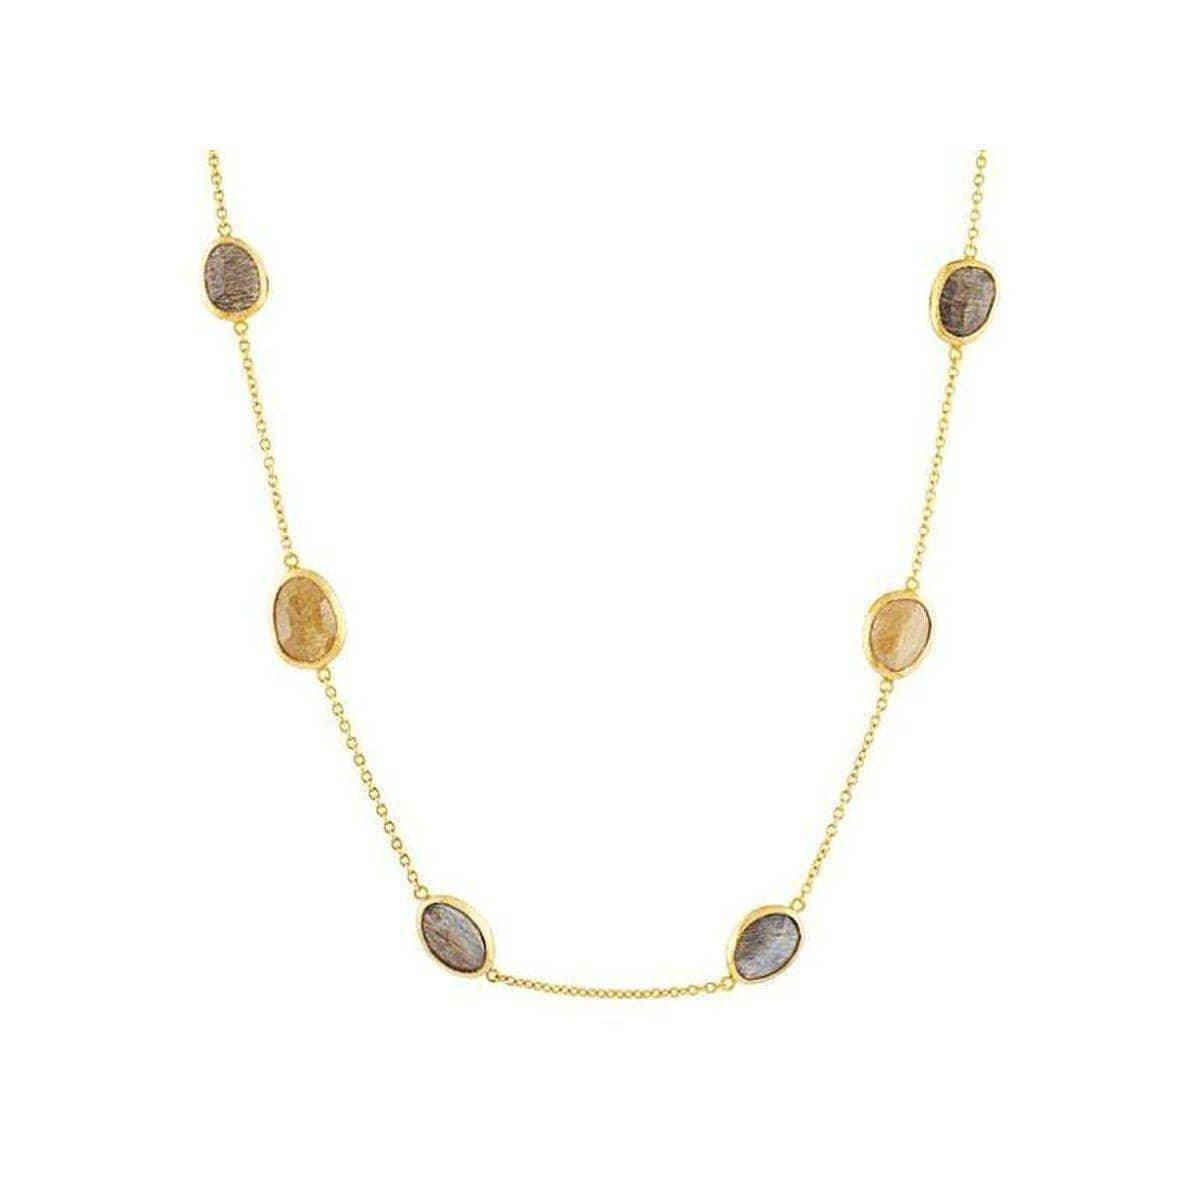 Elements 24K Gold Feld Spa Necklace - N-U21433-FDS-GURHAN-Renee Taylor Gallery